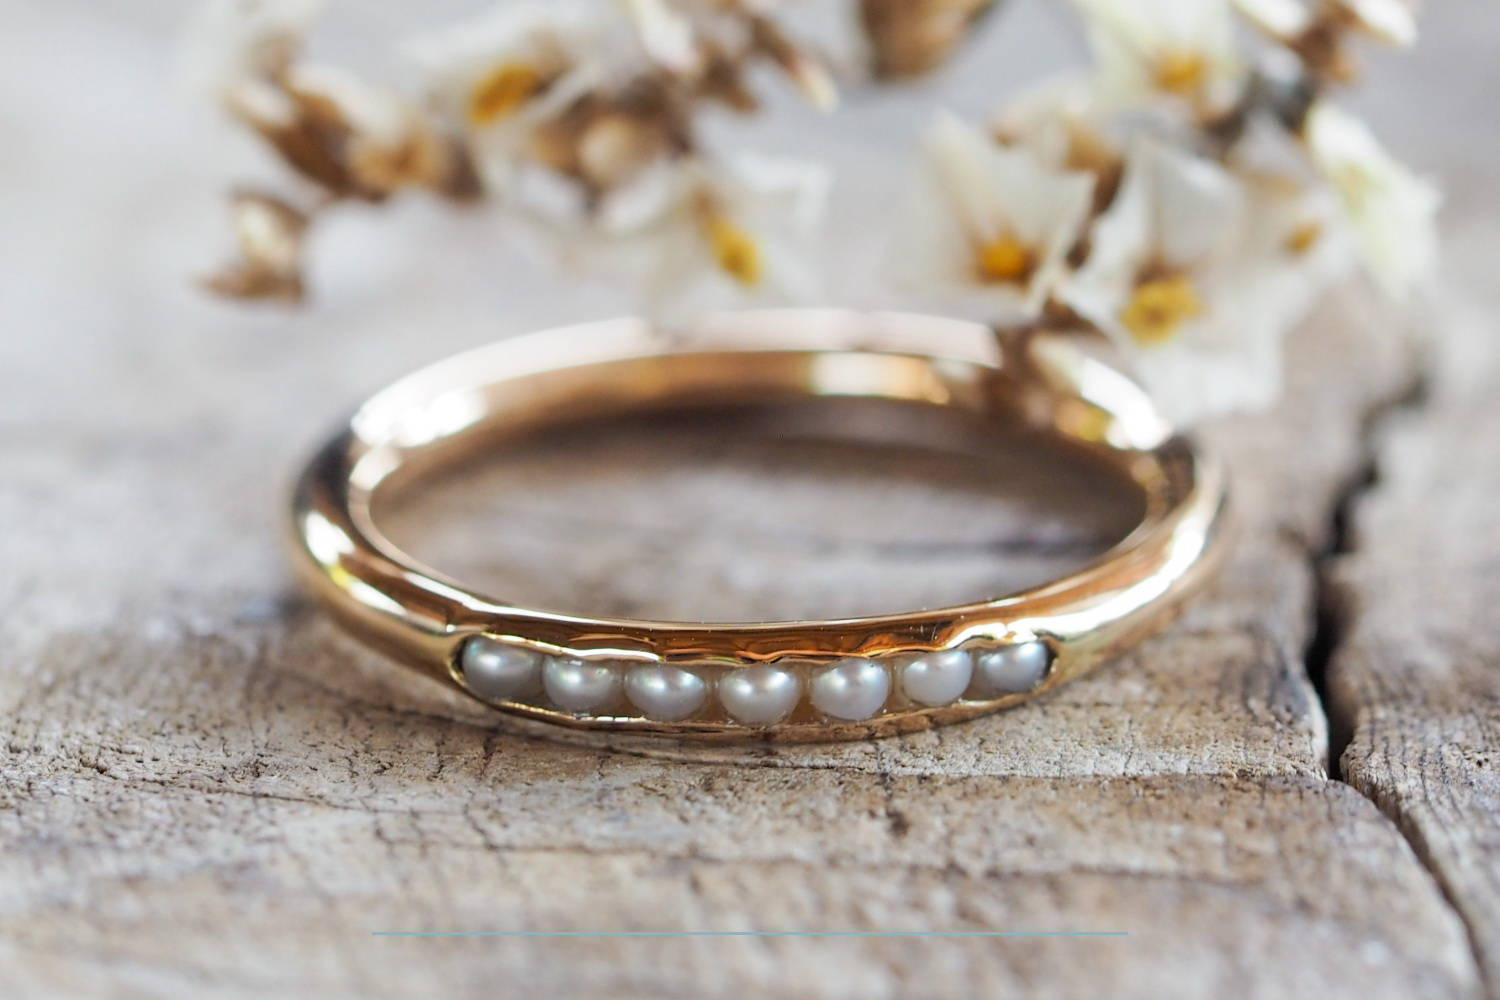 Ethical gold pearl ring